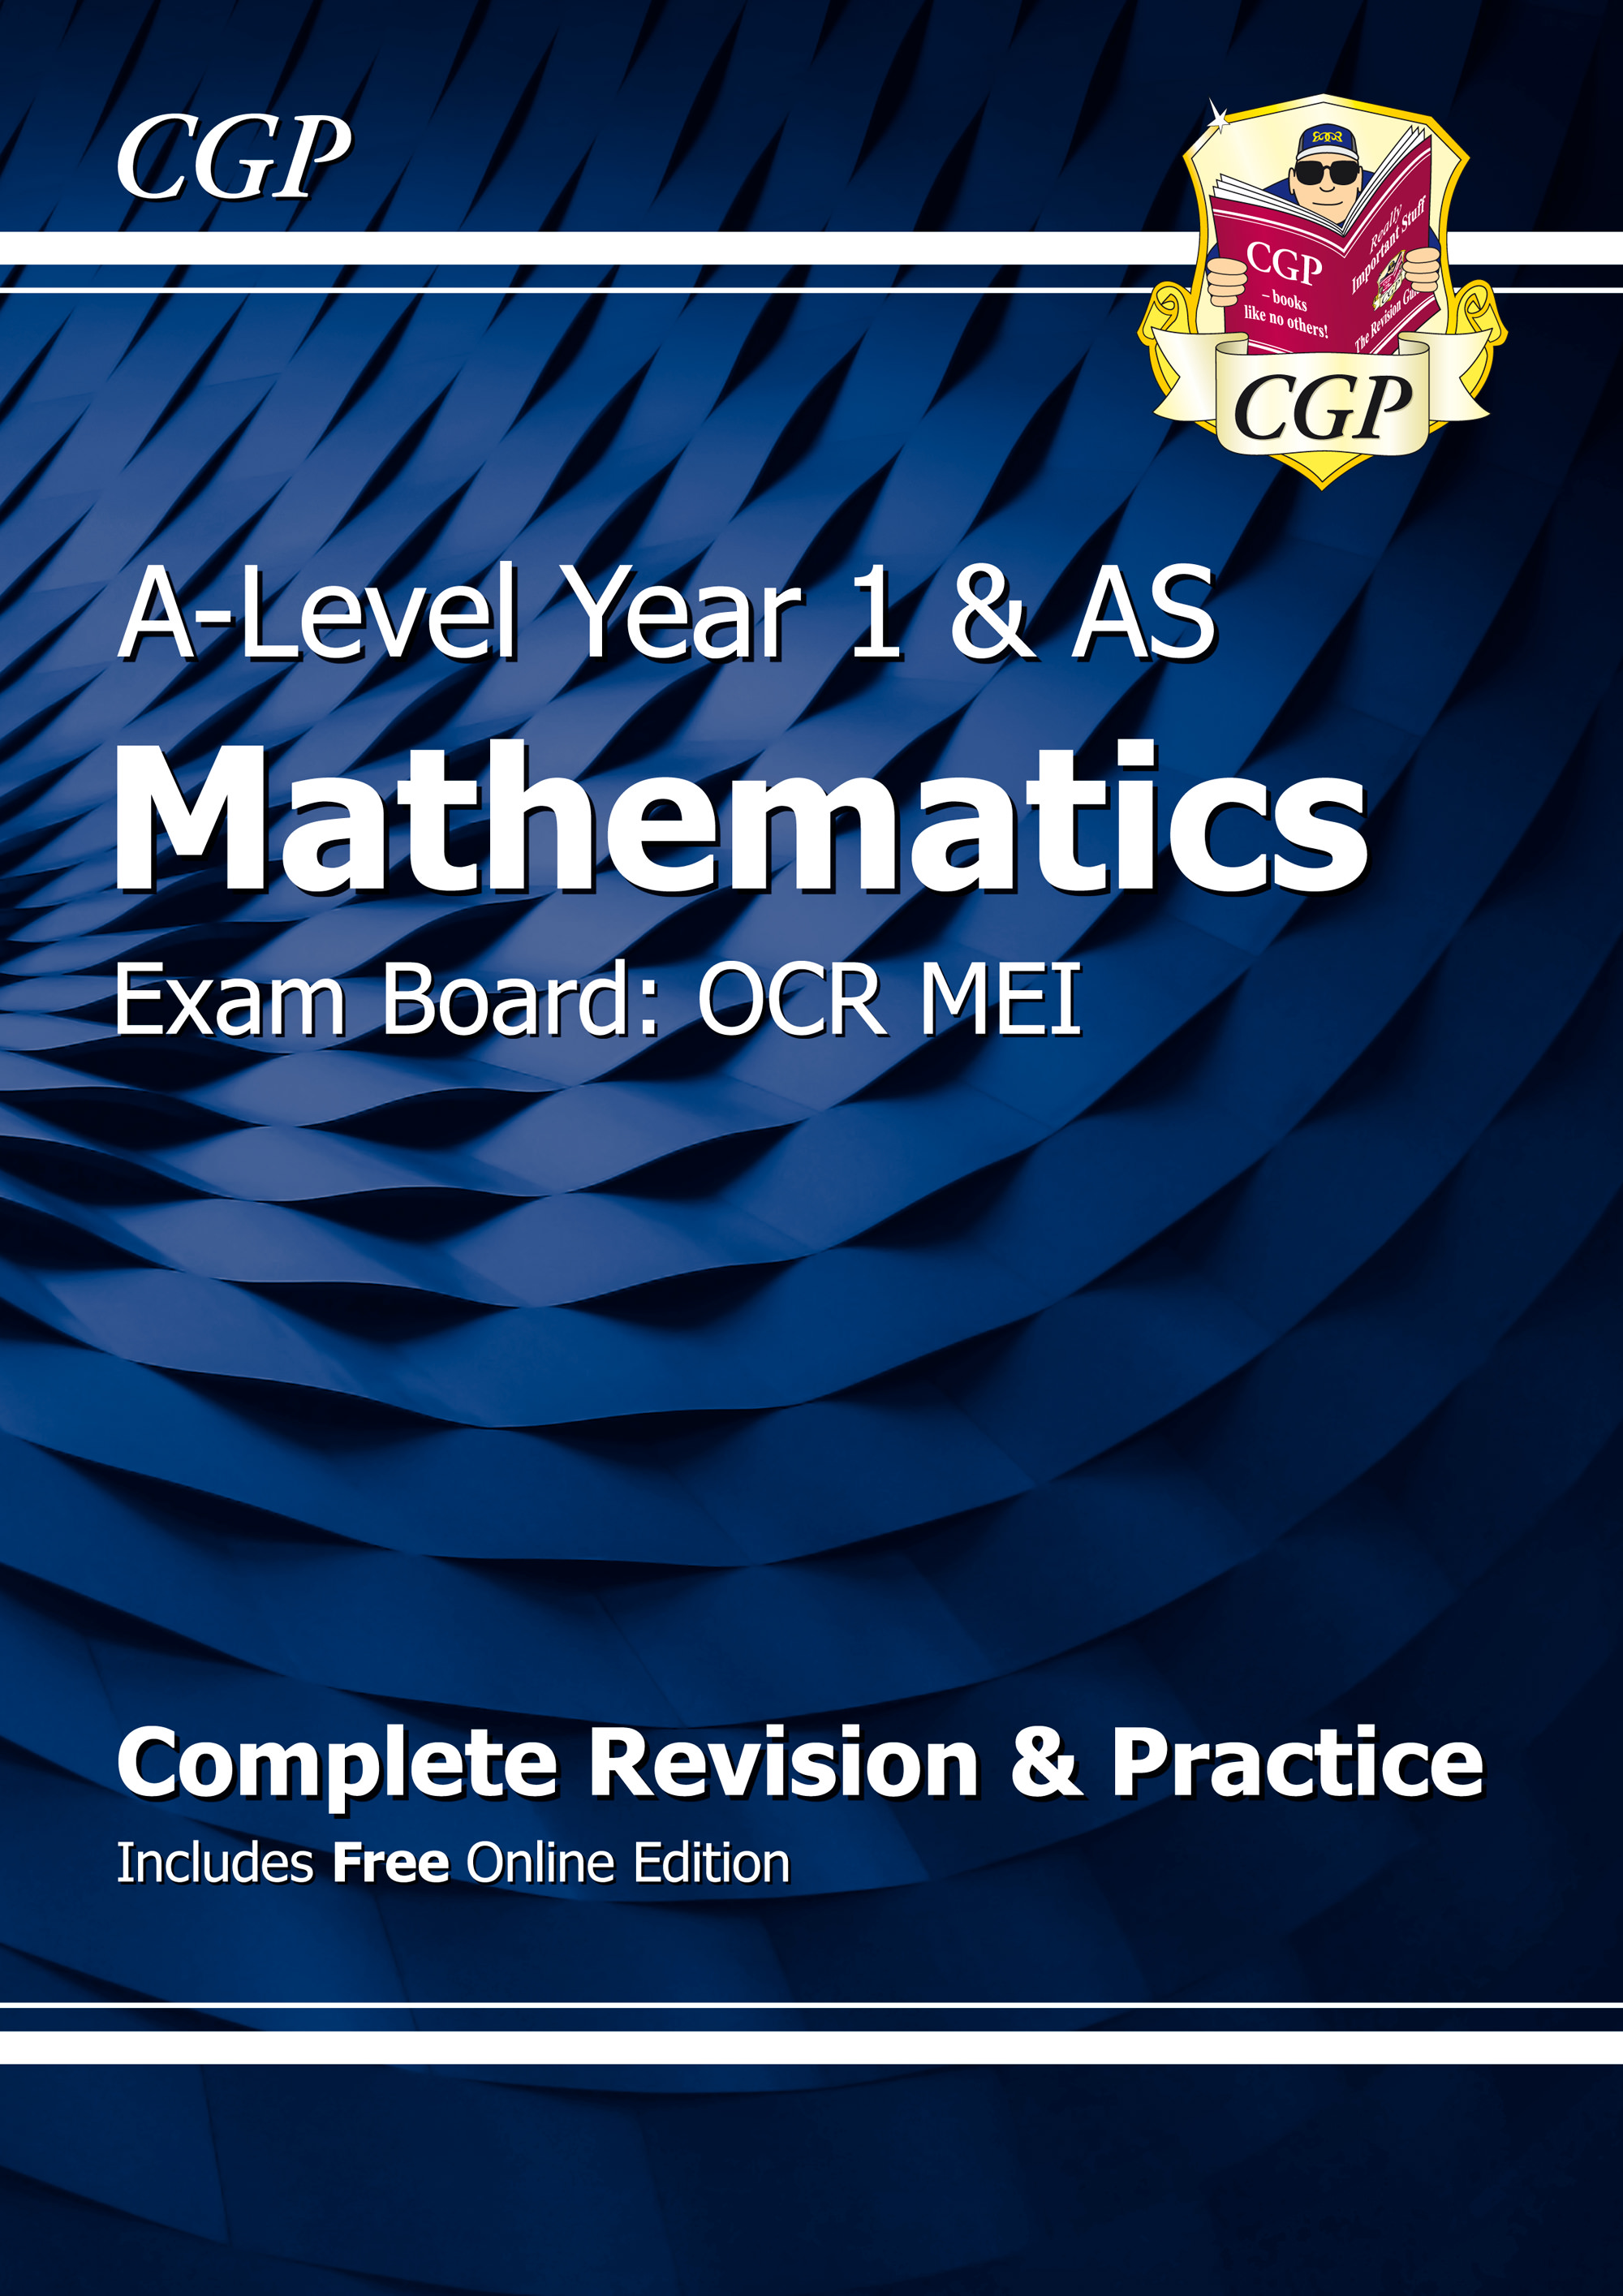 MRMR52 - A-Level Maths for OCR MEI: Year 1 & AS Complete Revision & Practice with Online Edition